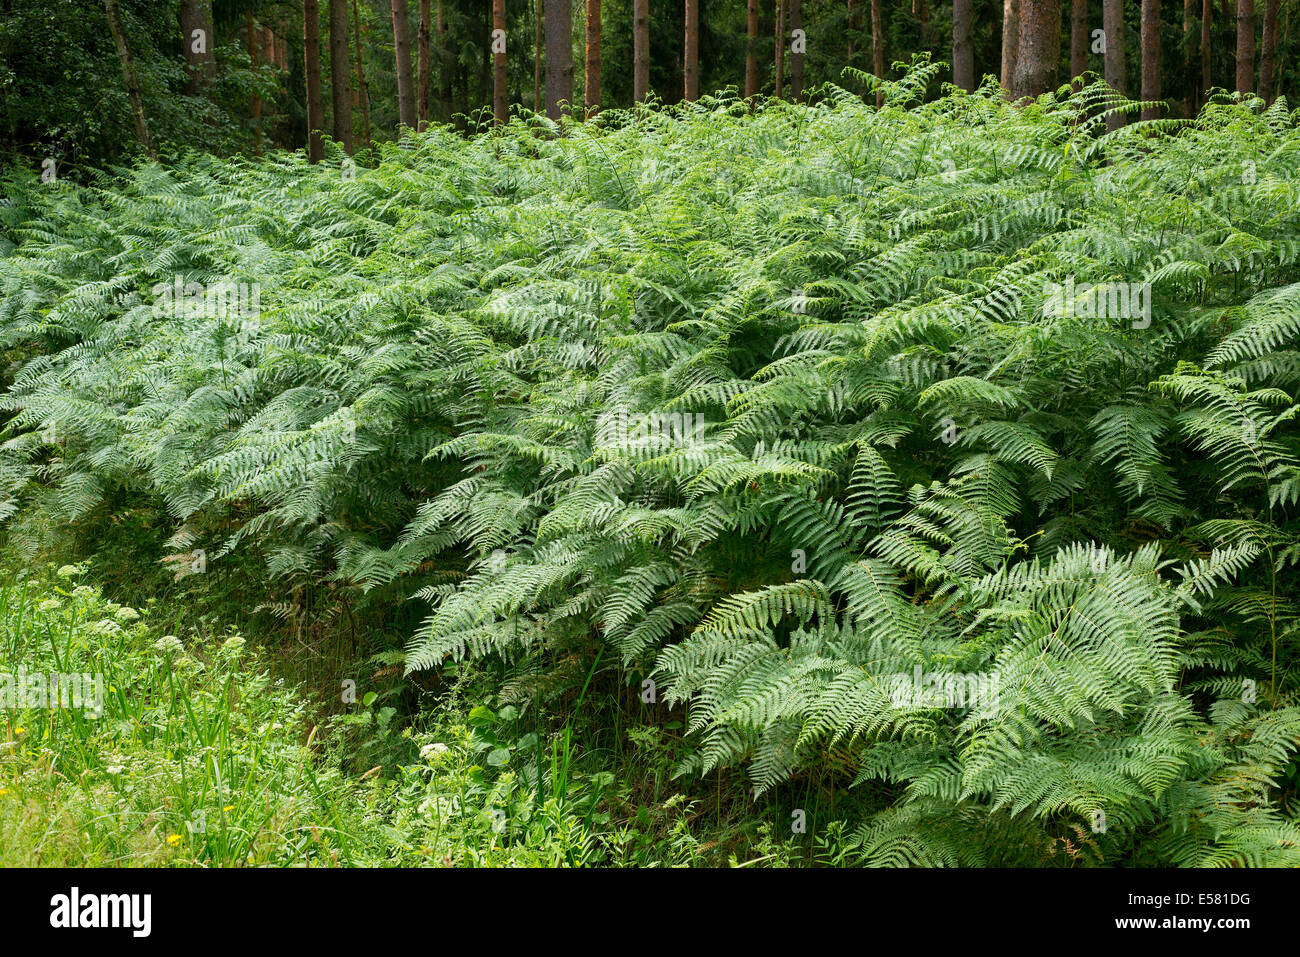 Bracken (Pteridium aquilinum), growing in abundance, Barnbruch nature reserve, Lower Saxony, Germany - Stock Image